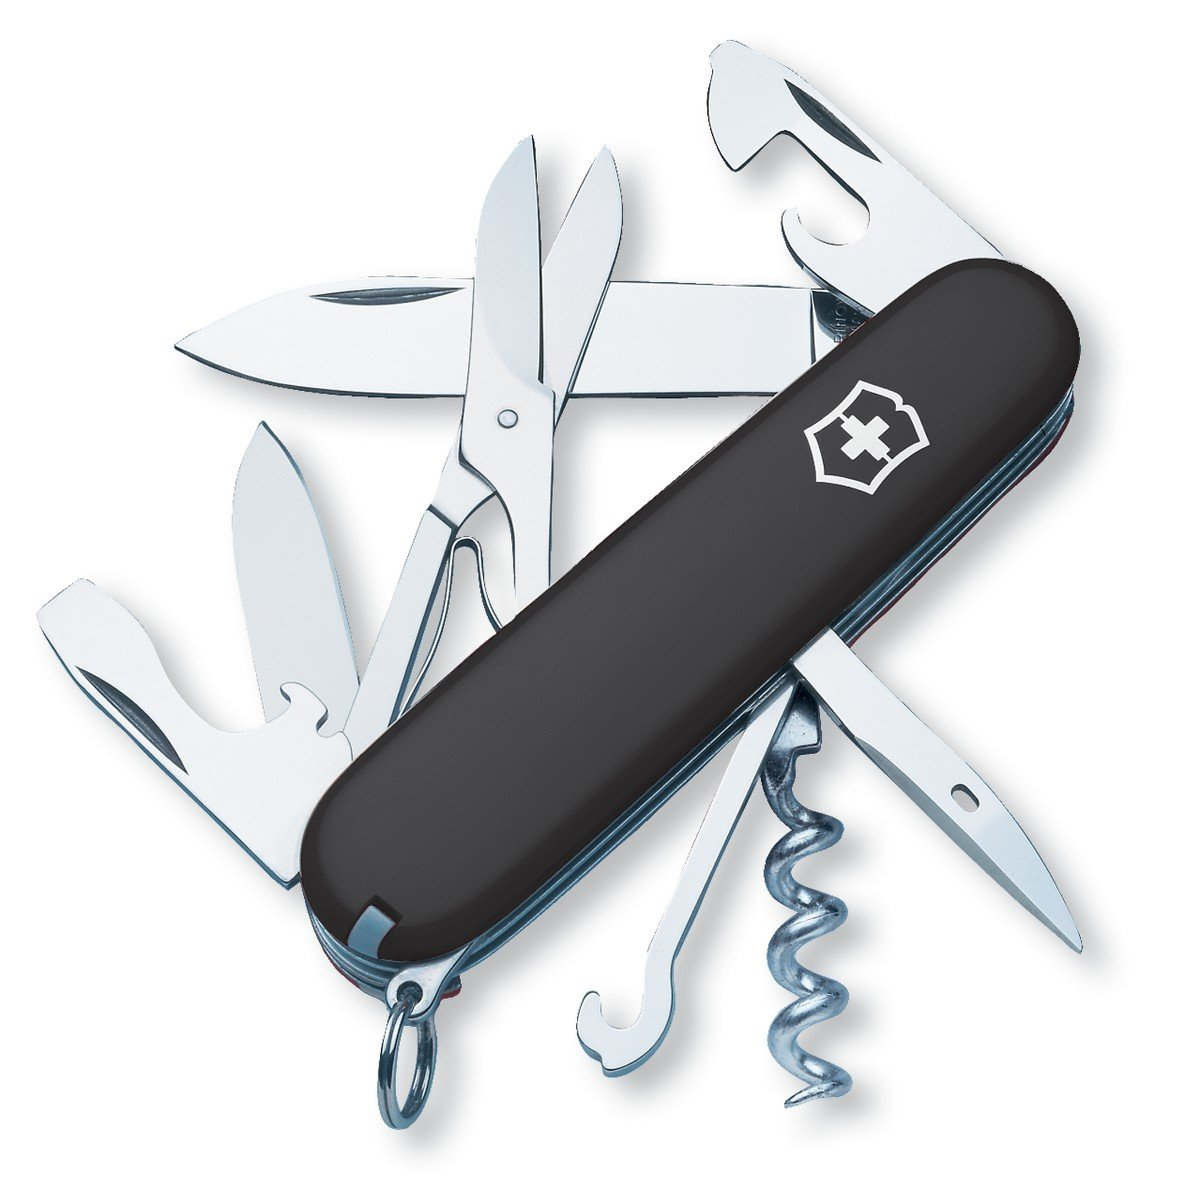 Victorinox Swiss Army Climber Pocket Knife Black One Need A Wiring Diagram Mustang Evolution Size Folding Camping Knives Sports Outdoors